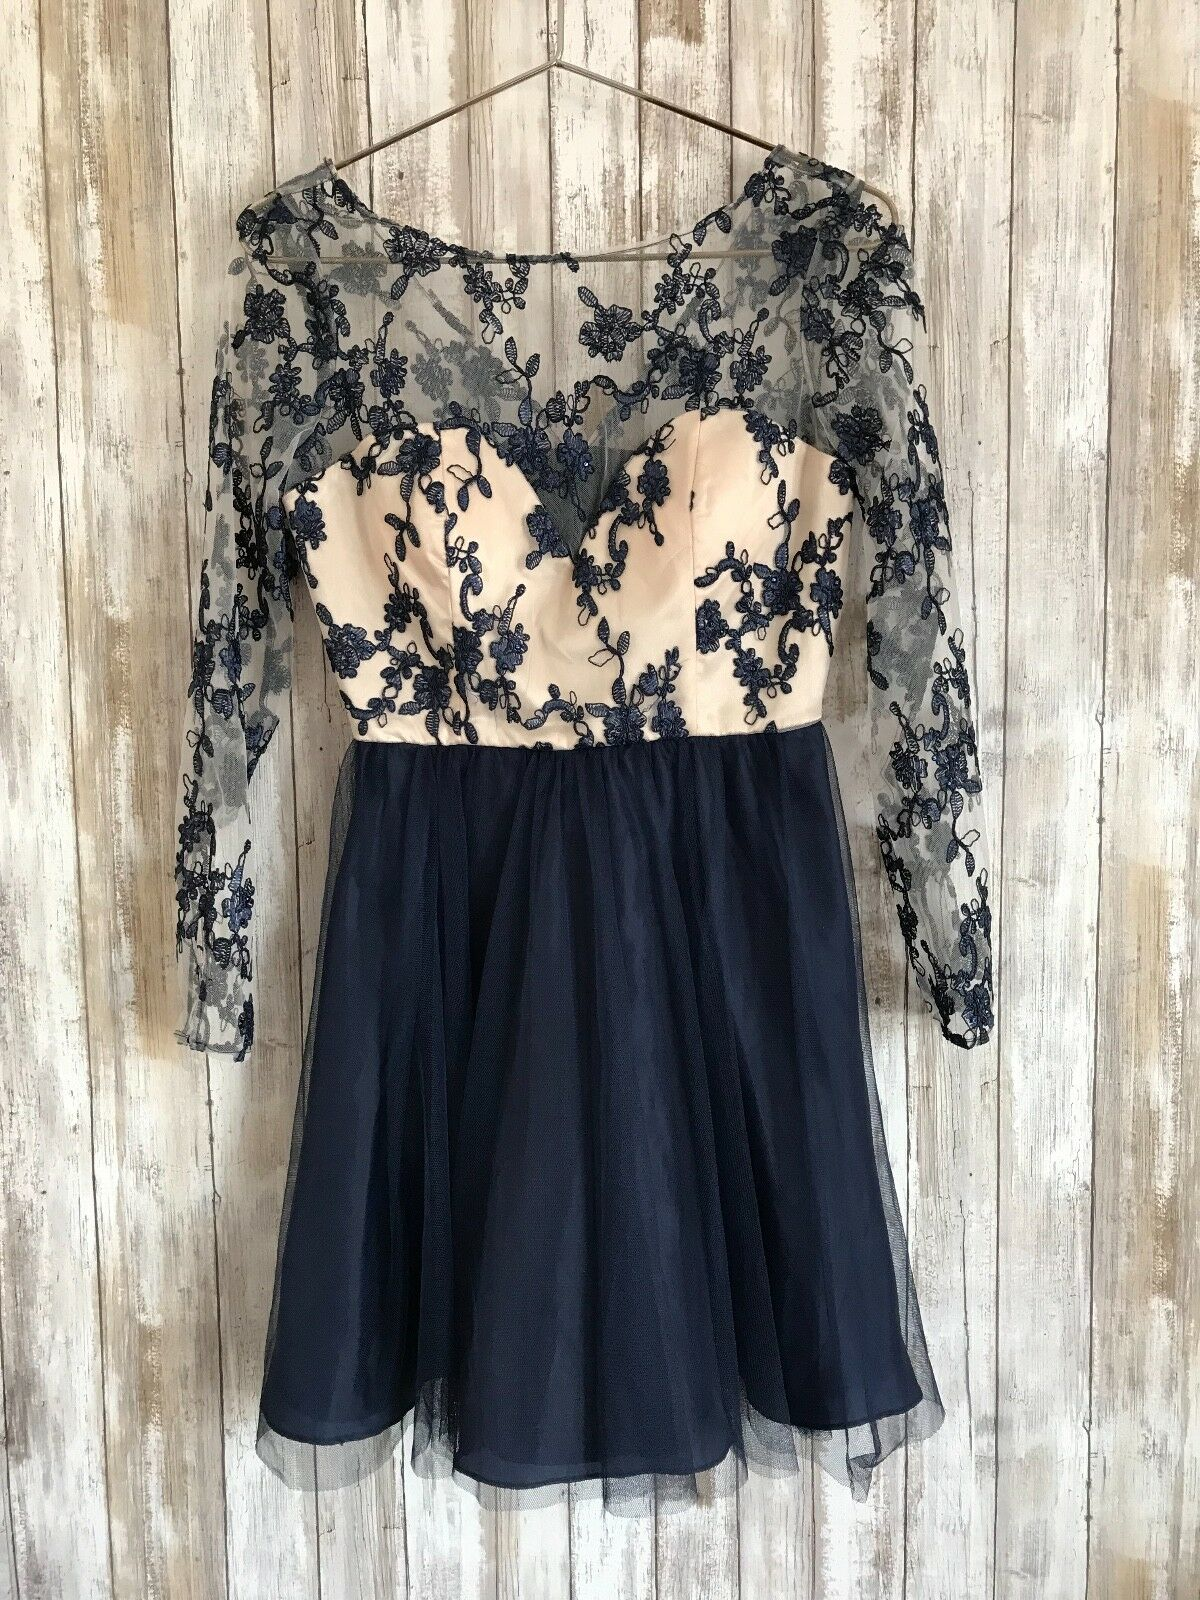 a7c86c4980 Nordstrom Dear Moon Navy bluee Sheer Lace Floral Junior 7 Prom Dress  STUNNING